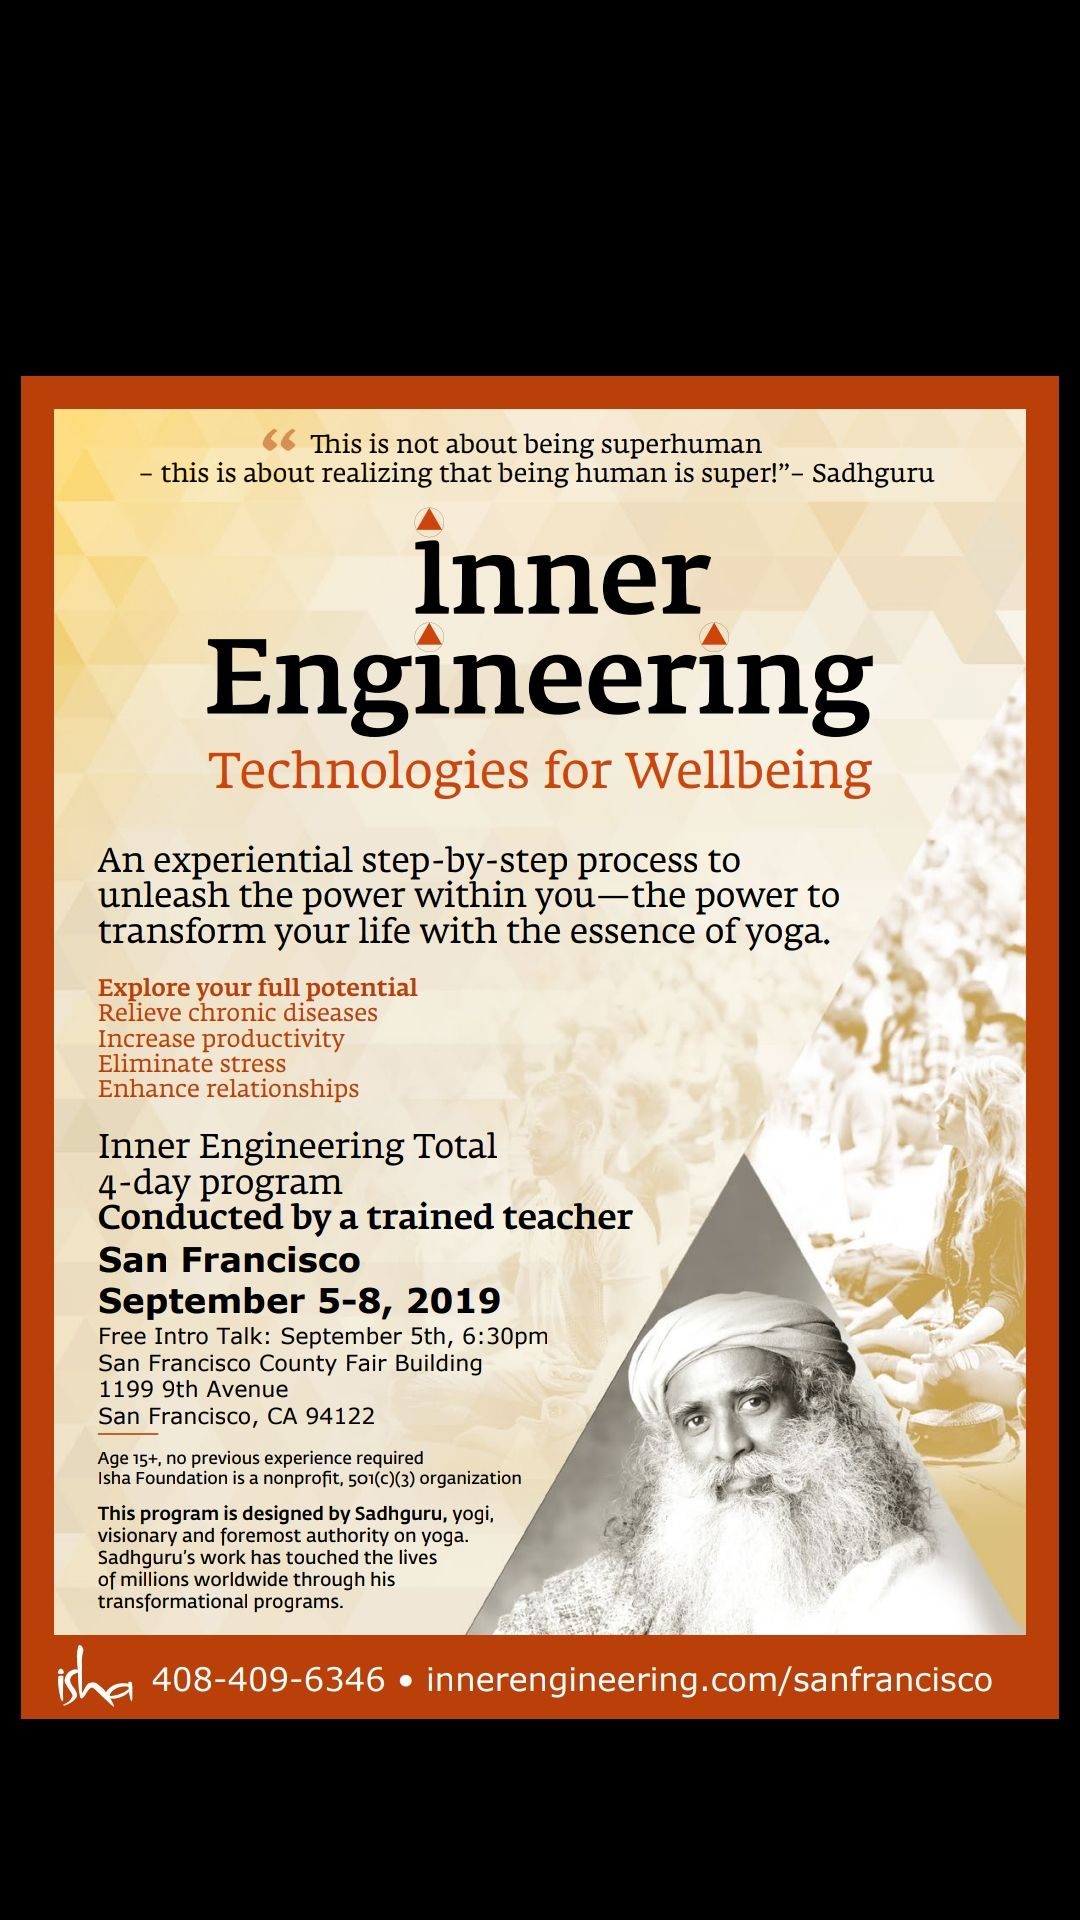 Inner Engineering Total - Find Health, Peace, and Joy from